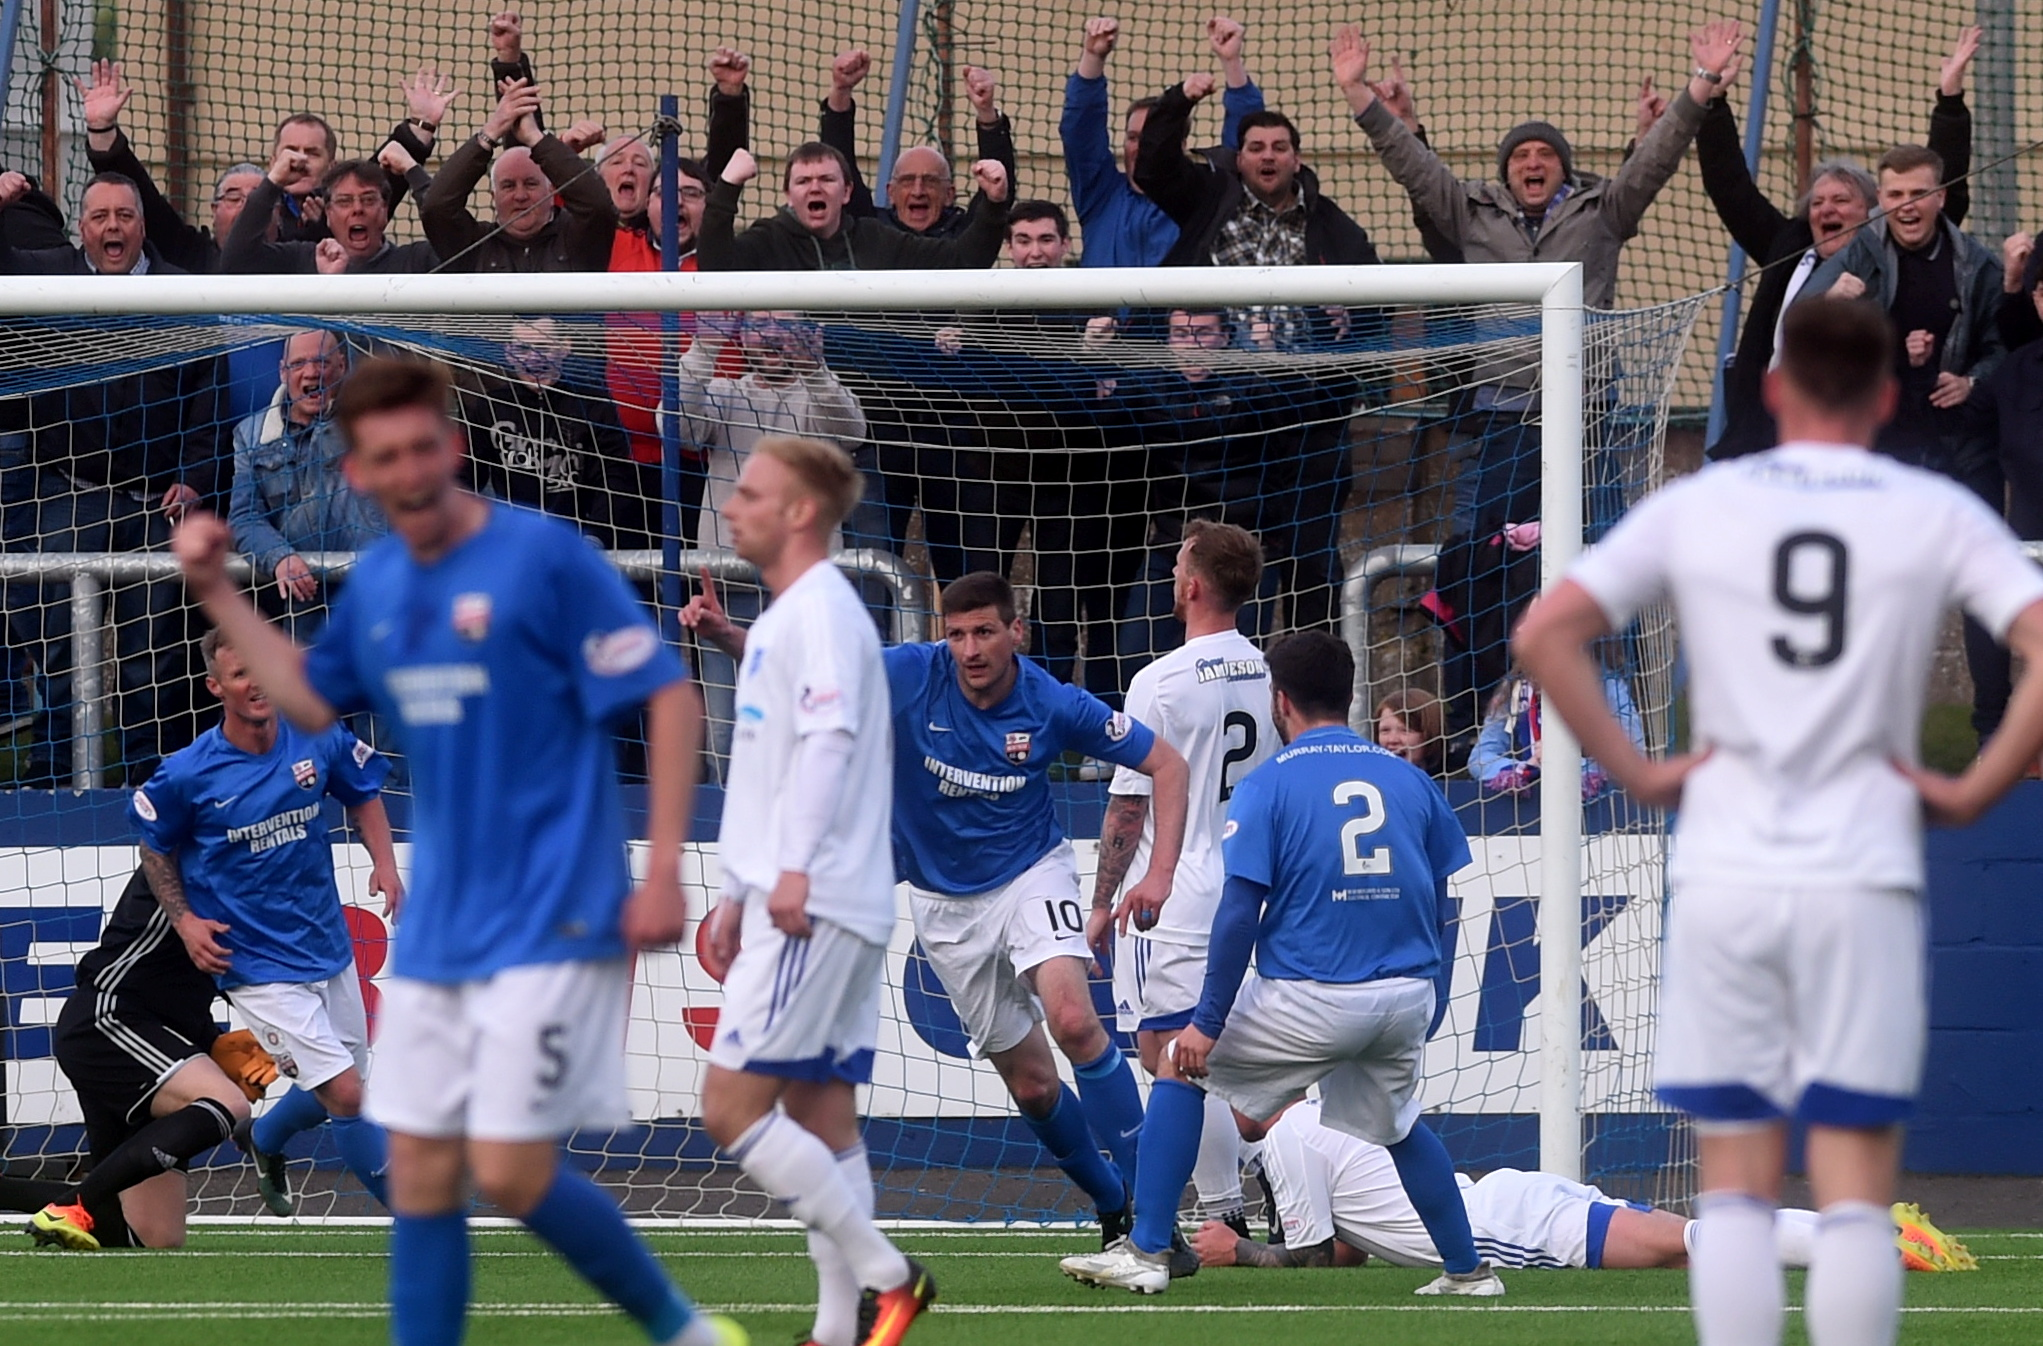 Chris Templeman (blue 10, centre) celebrates Montrose's equaliser as Peterhead were held to a 1-1 draw. (Picture by Darrell Benns.)